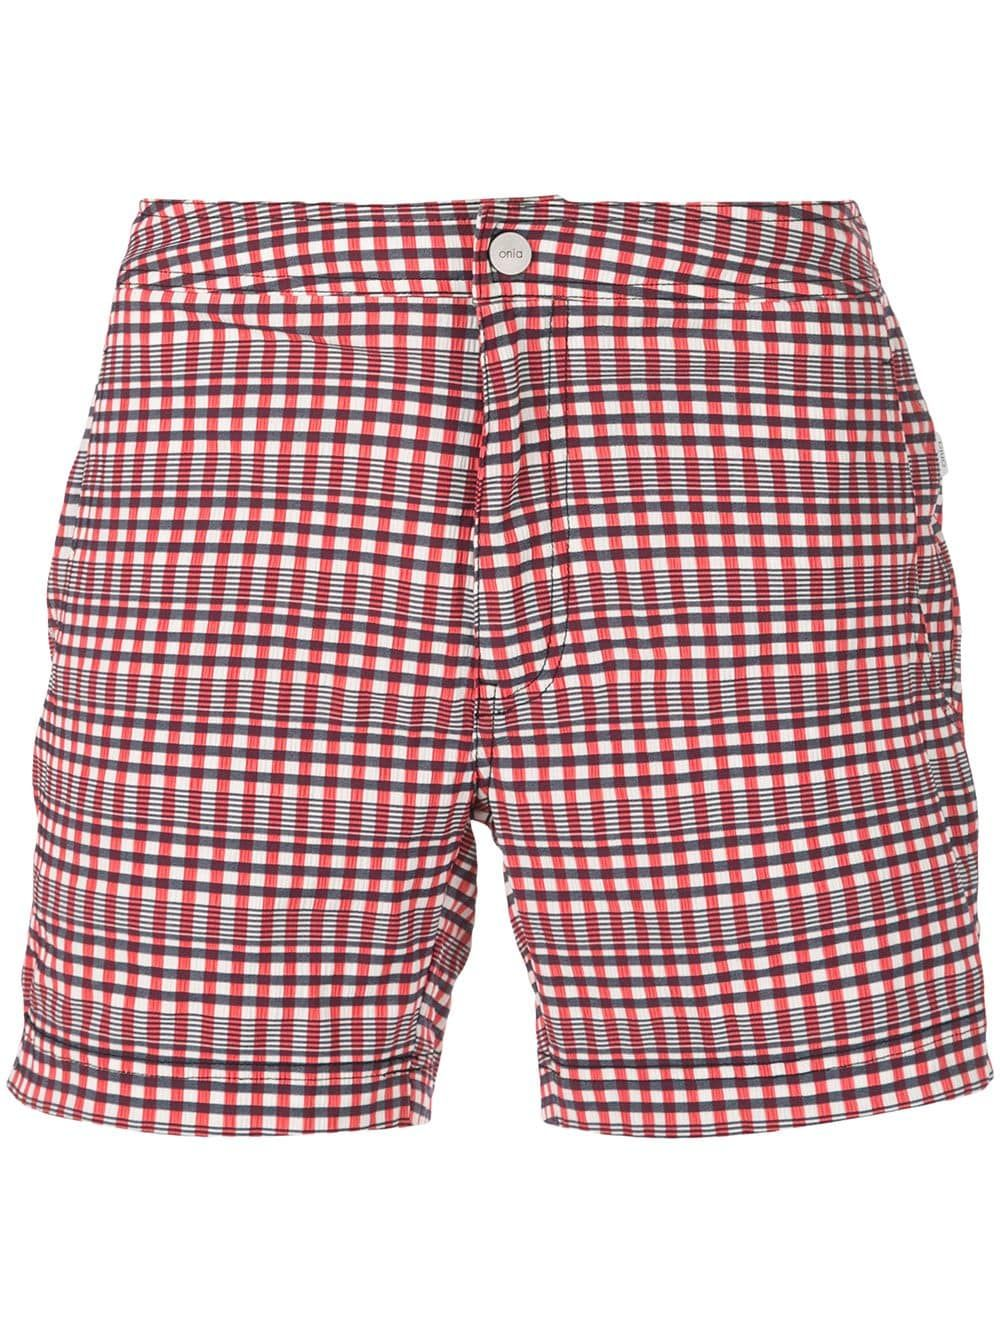 625509ff22 ONIA ONIA CALDER SWIMMING TRUNKS - RED. #onia #cloth   Onia in 2019 ...